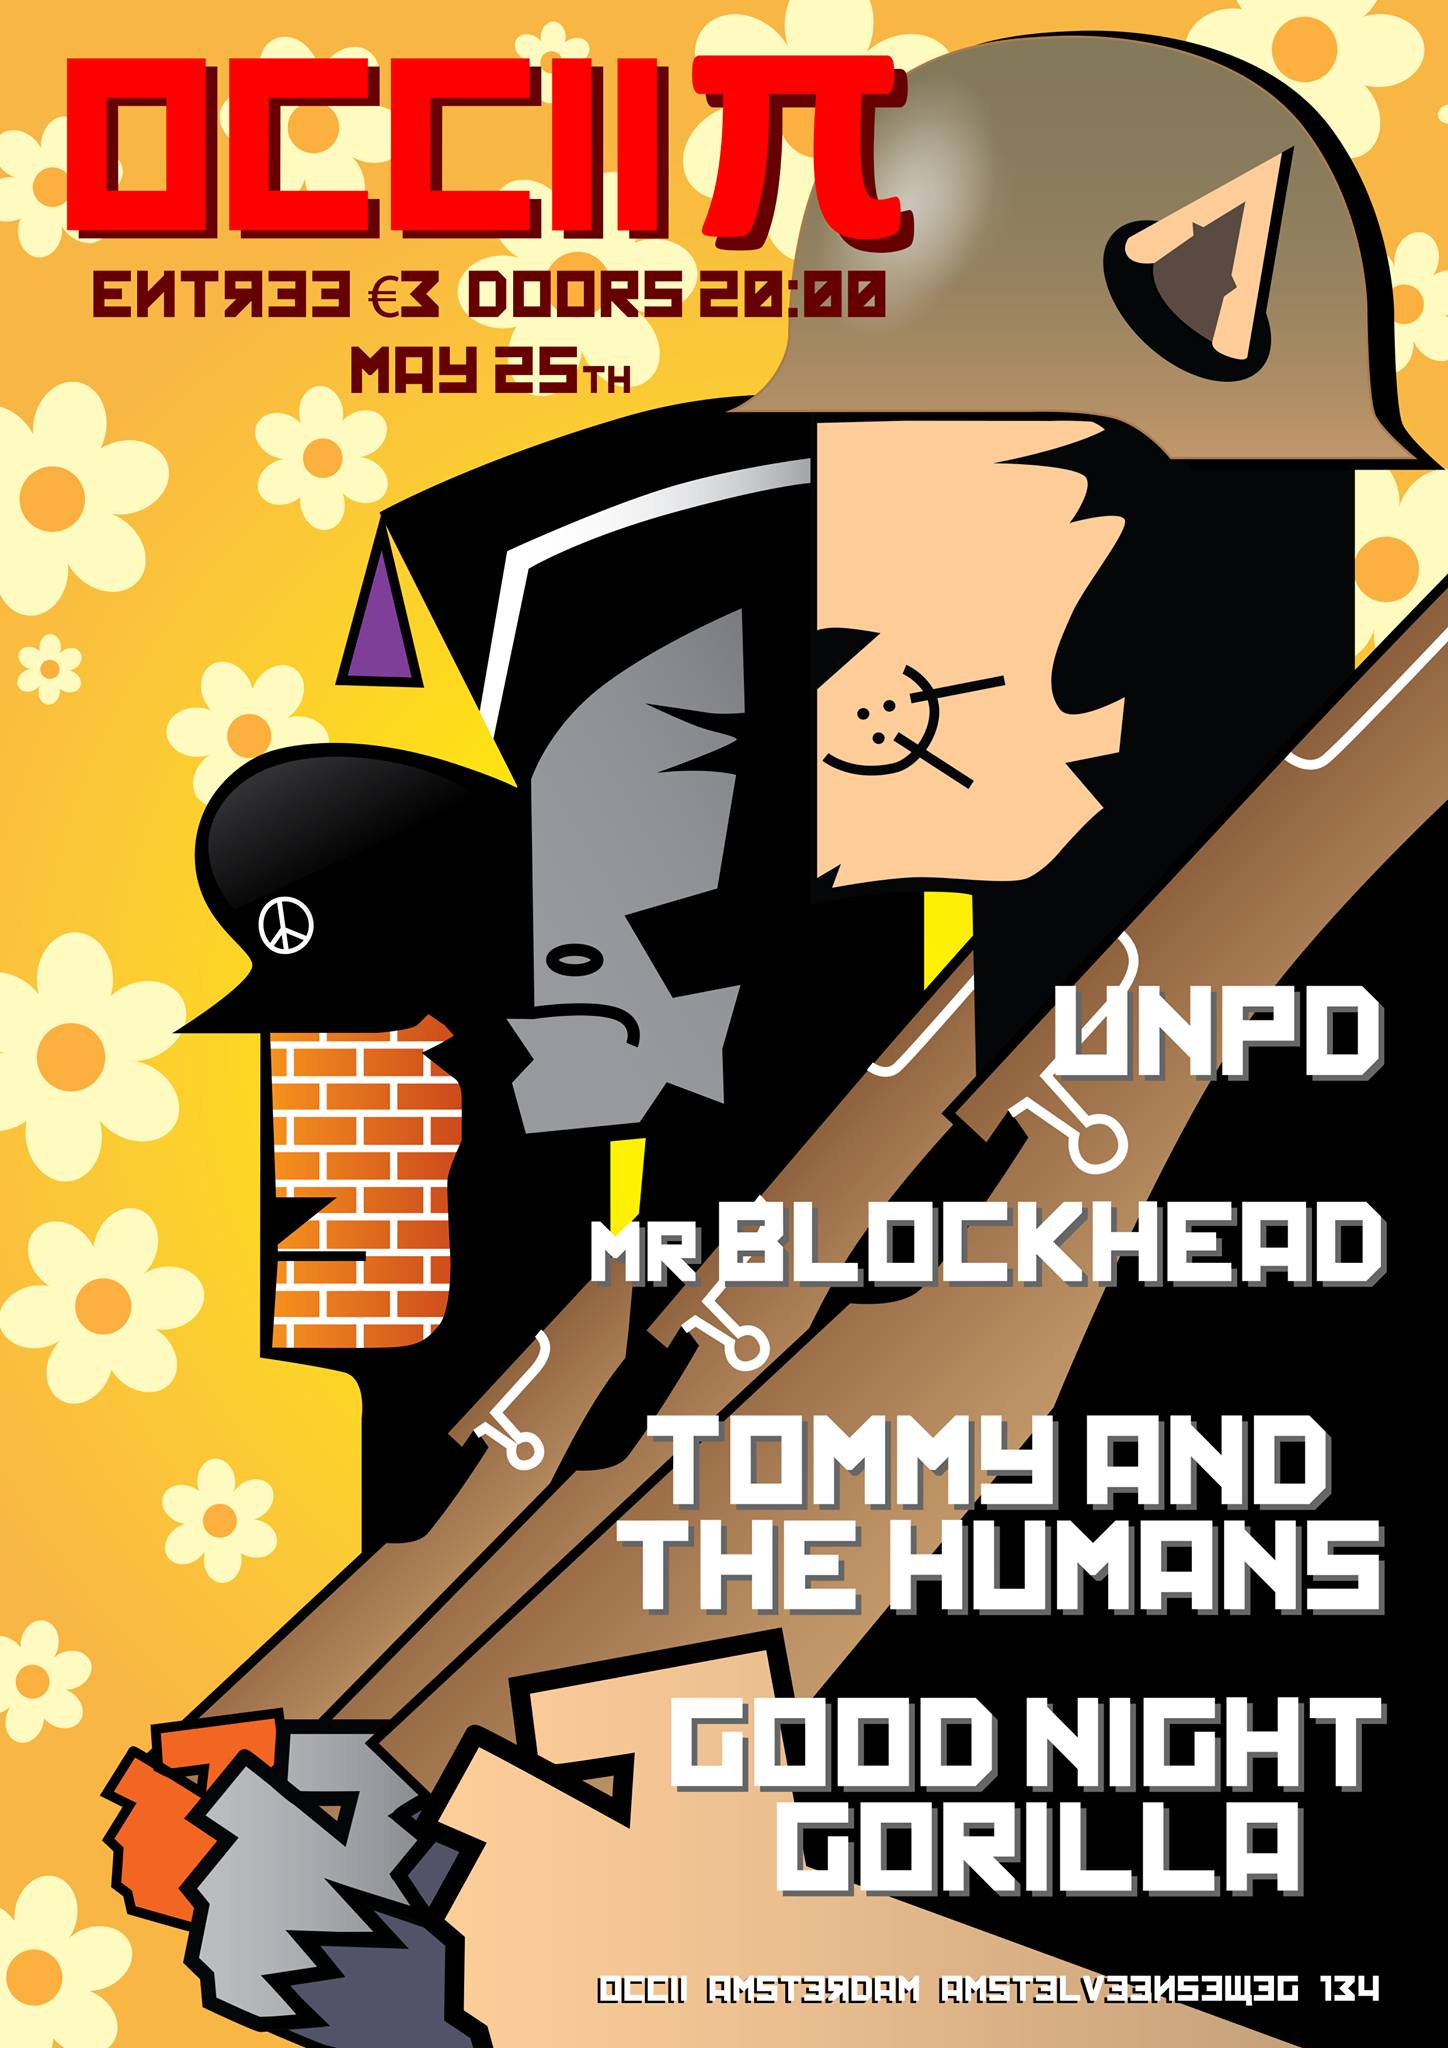 OCCII PI w/ UNPD + TOMMY AND THE HUMANS + GOOD NIGHT GORILLA + MR BLOCKHEAD